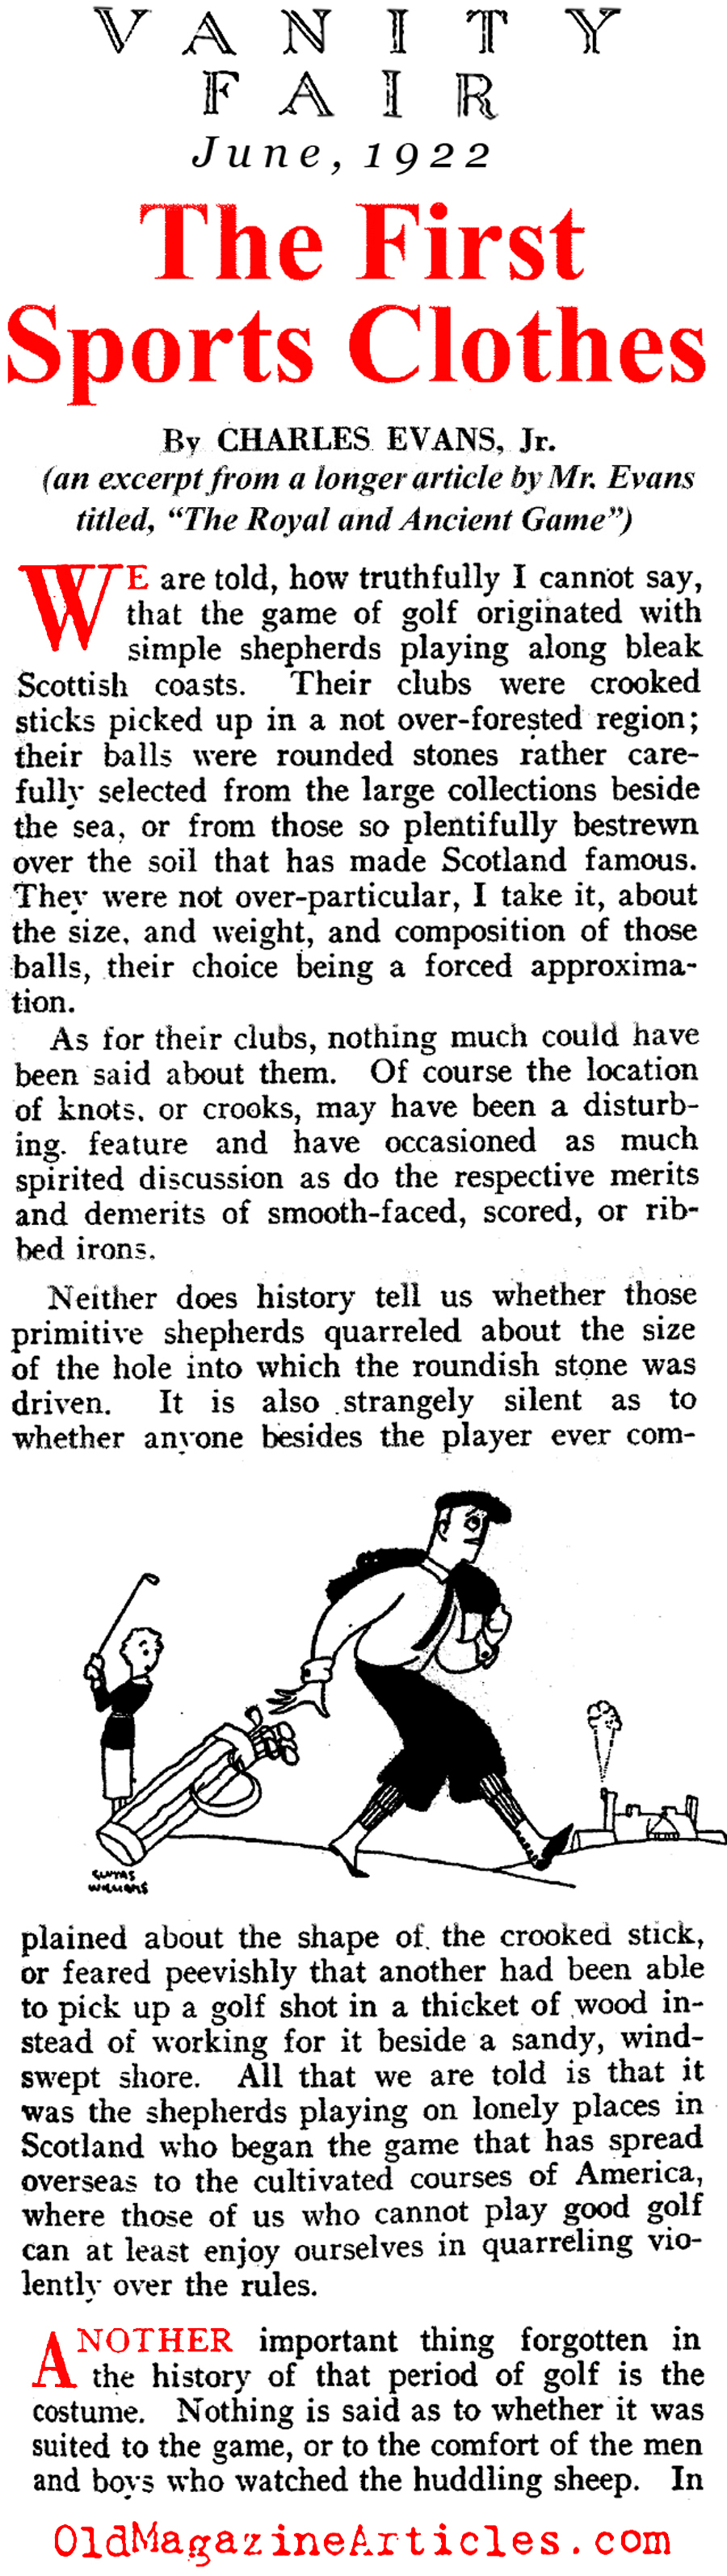 The Evolution of  Golf Clothes (Vanity Fair Magazine, 1922)